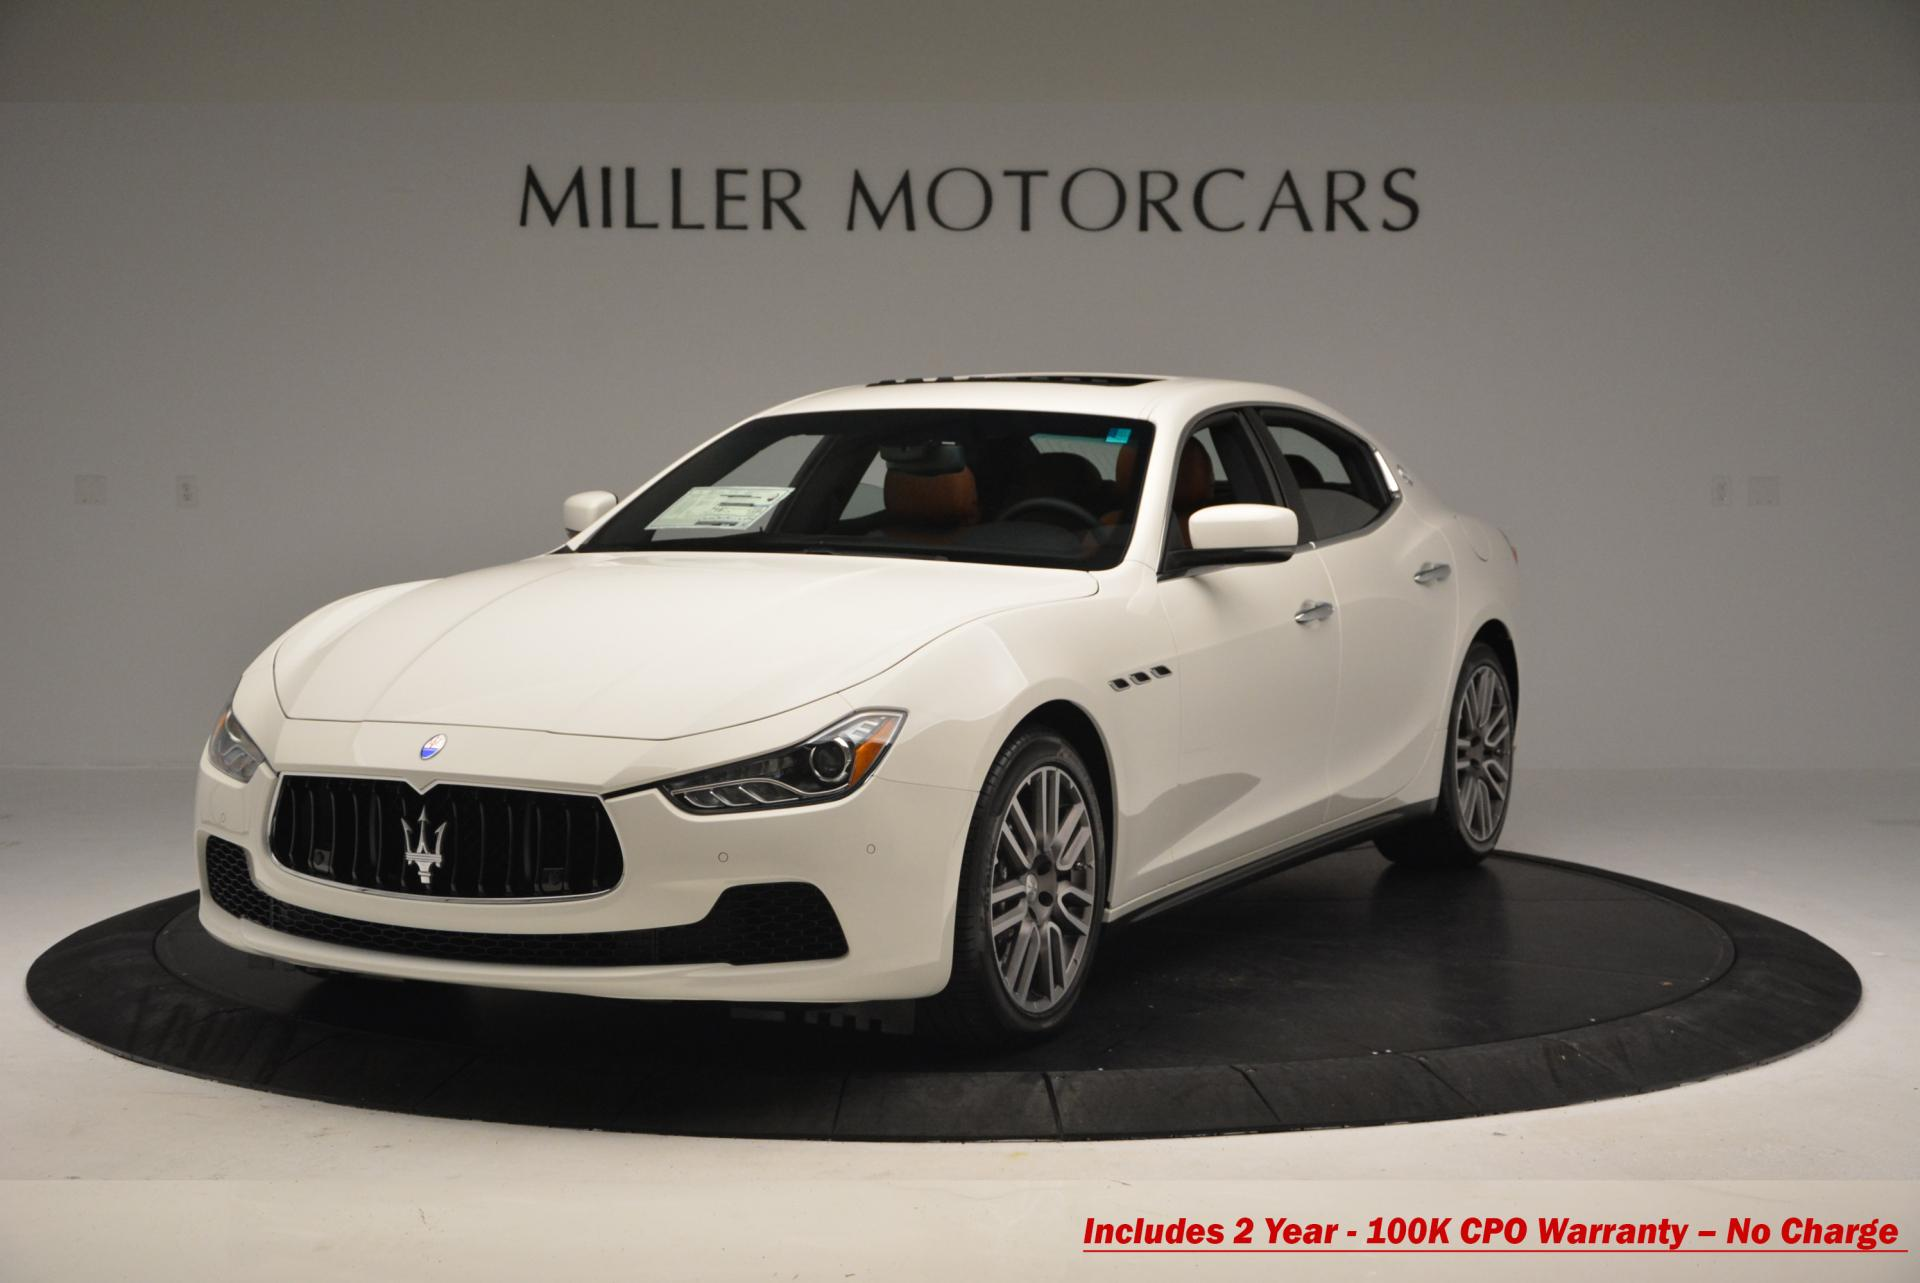 Used 2016 Maserati Ghibli S Q4 for sale Sold at Rolls-Royce Motor Cars Greenwich in Greenwich CT 06830 1